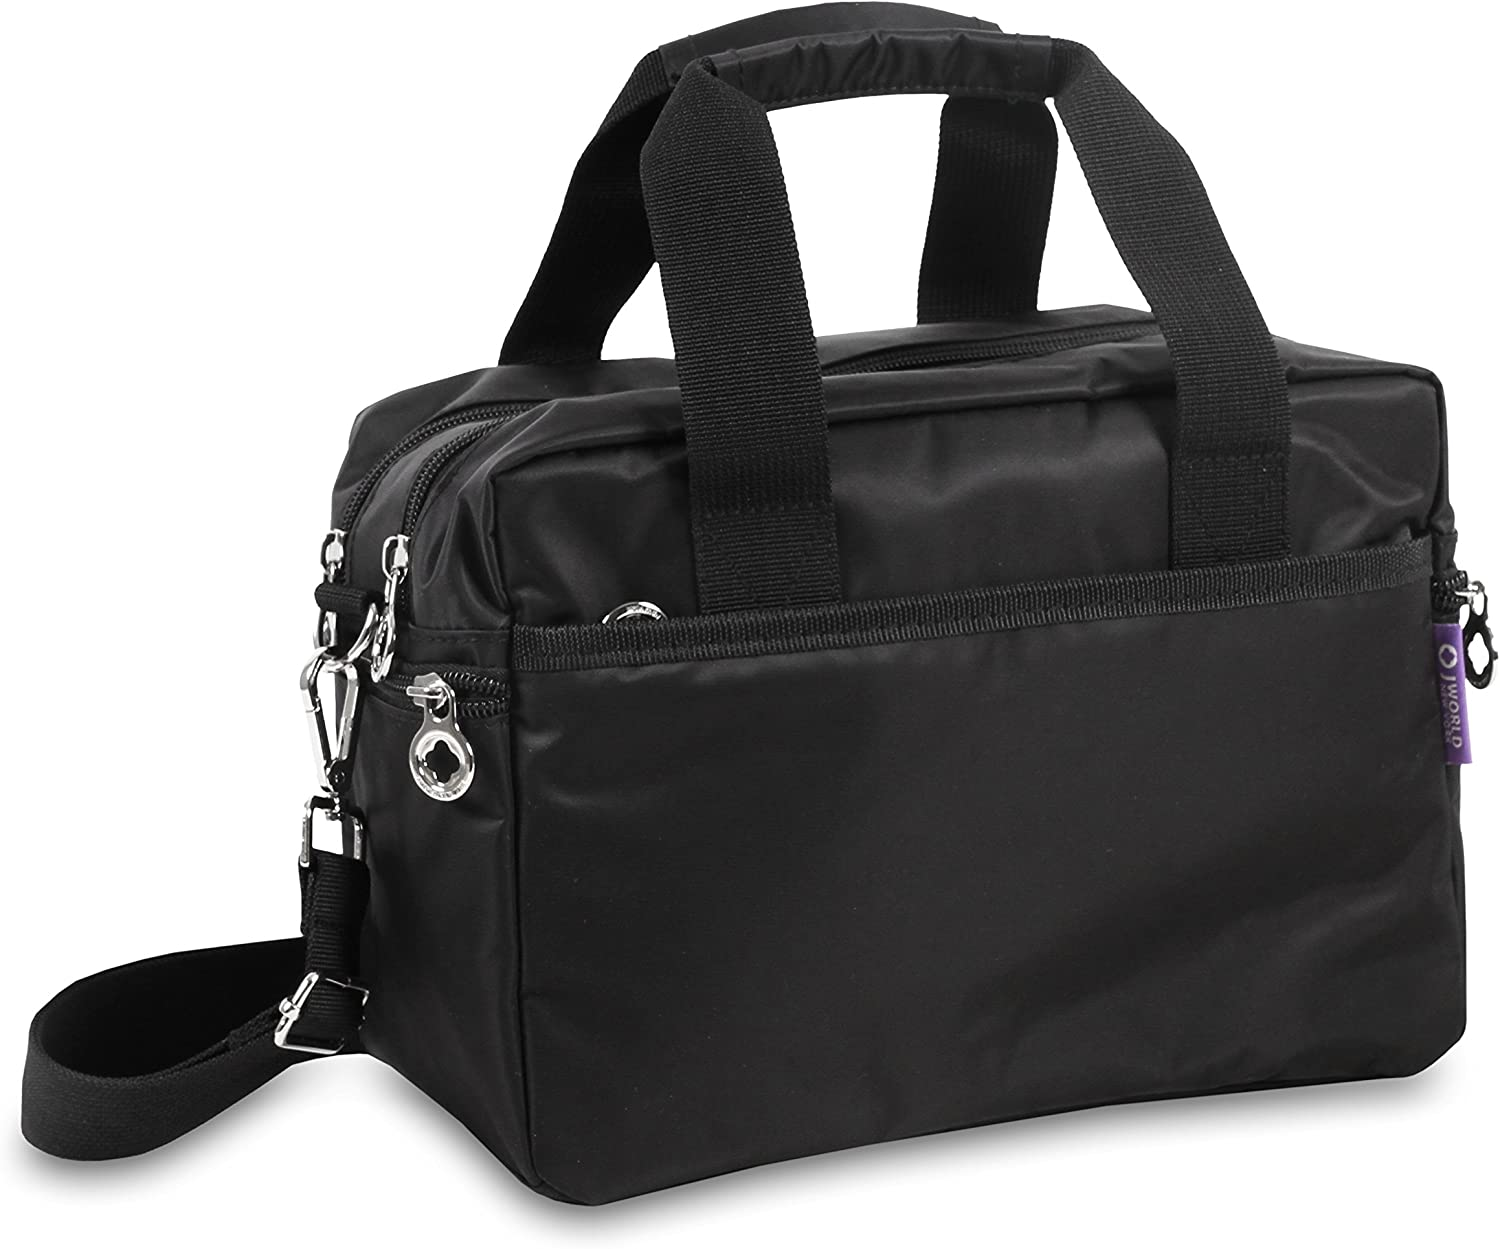 J World New York Aby Bag Travel Tote, Black, One Size